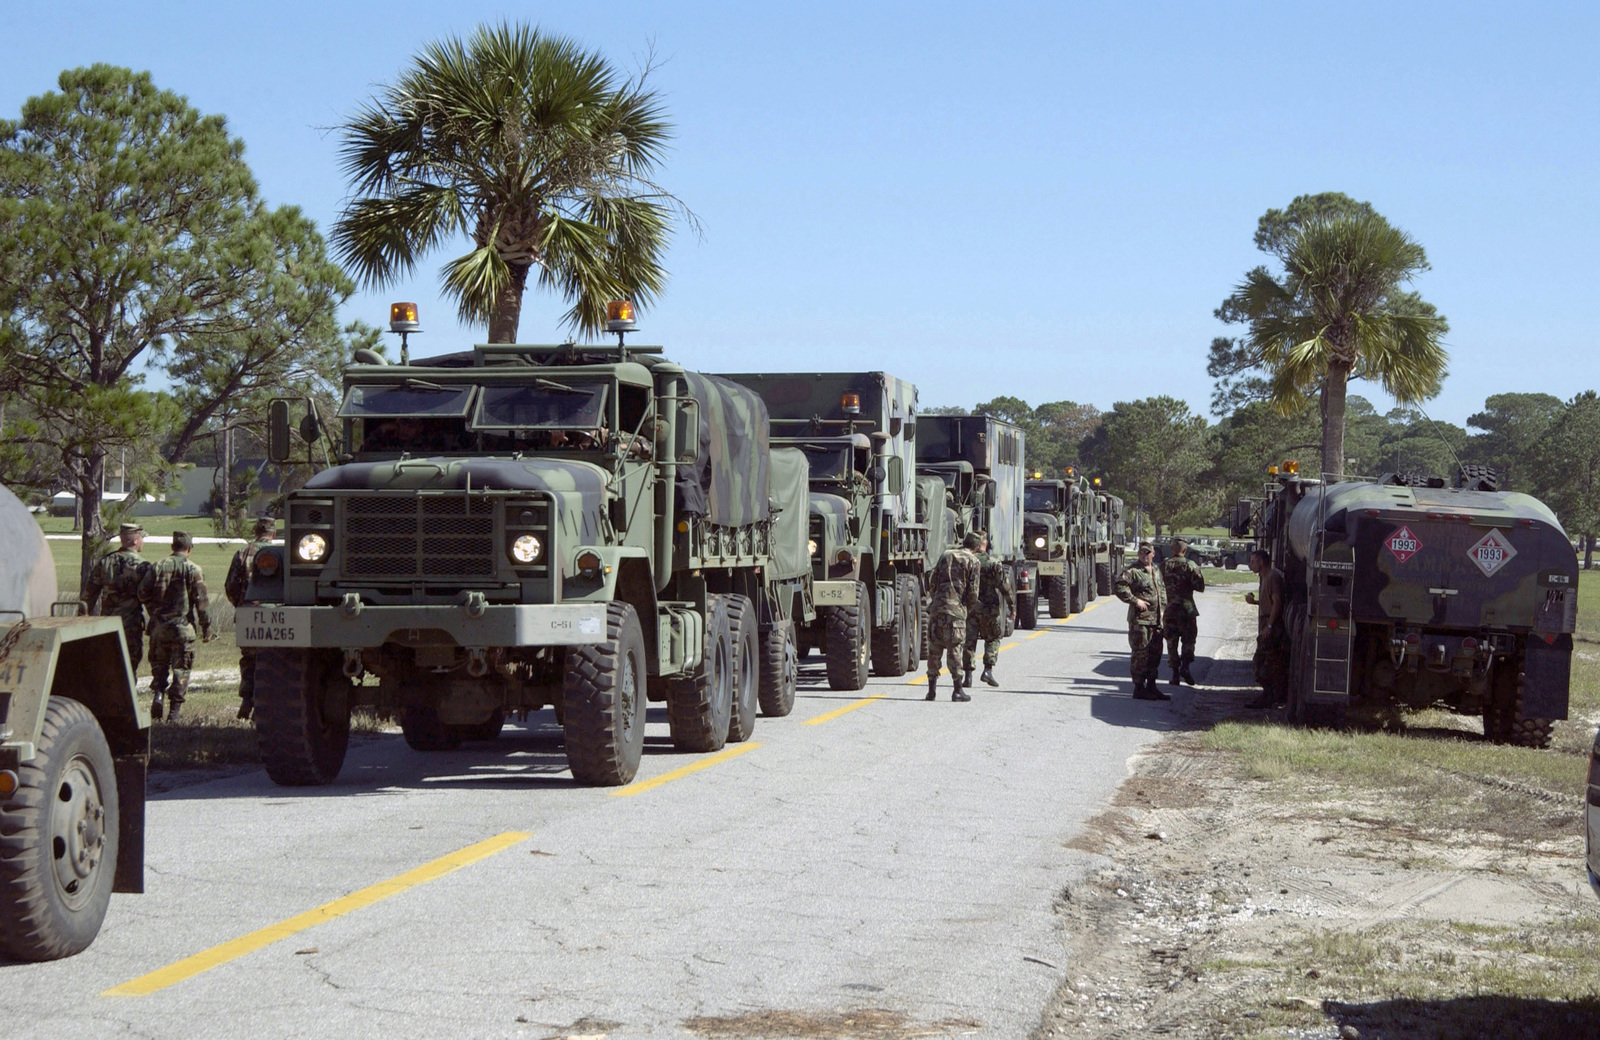 A supply truck convoy from the Florida Army National Guard personnel prepare to provide humanitarian relief to victims of Hurricane Ivan at MacDill Air Force Base, Fla., on Sept. 17, 2004.(U.S. Air Force PHOTO by Steven Wallace, CIV.) (RELEASED)